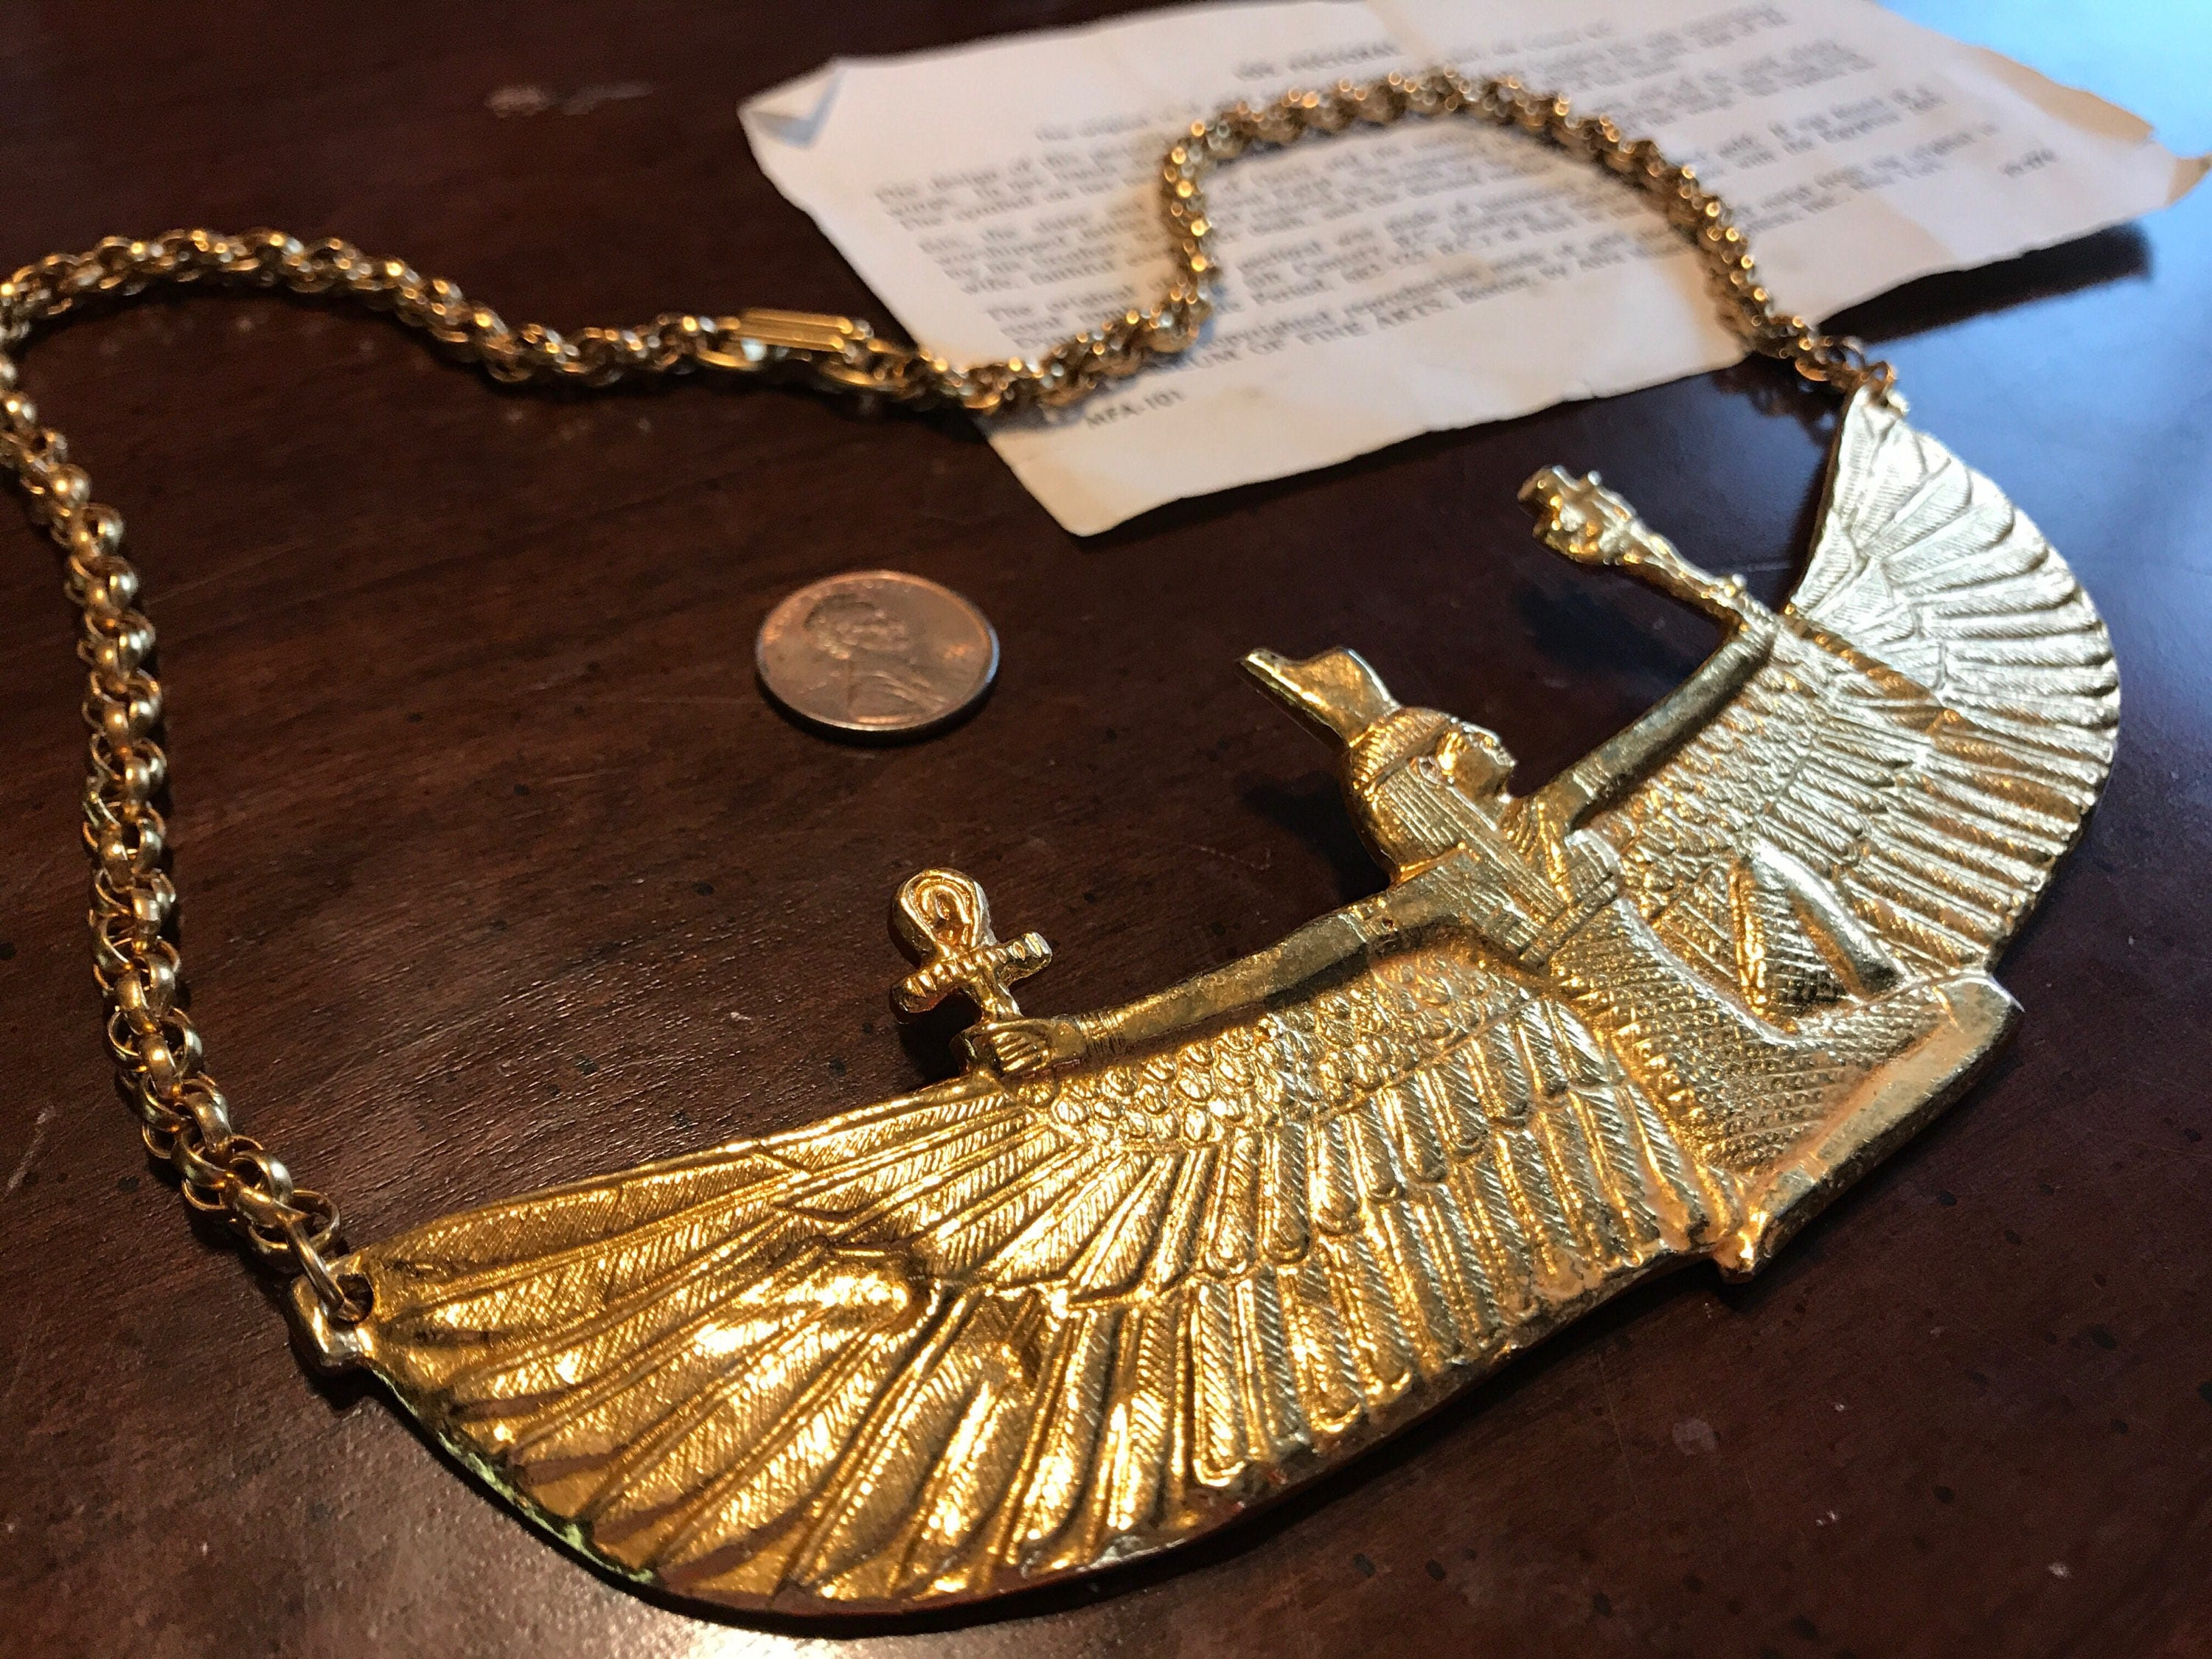 pendant saveenlarge hermes wingedheelnecklace winged galery traumspuren foot necklace